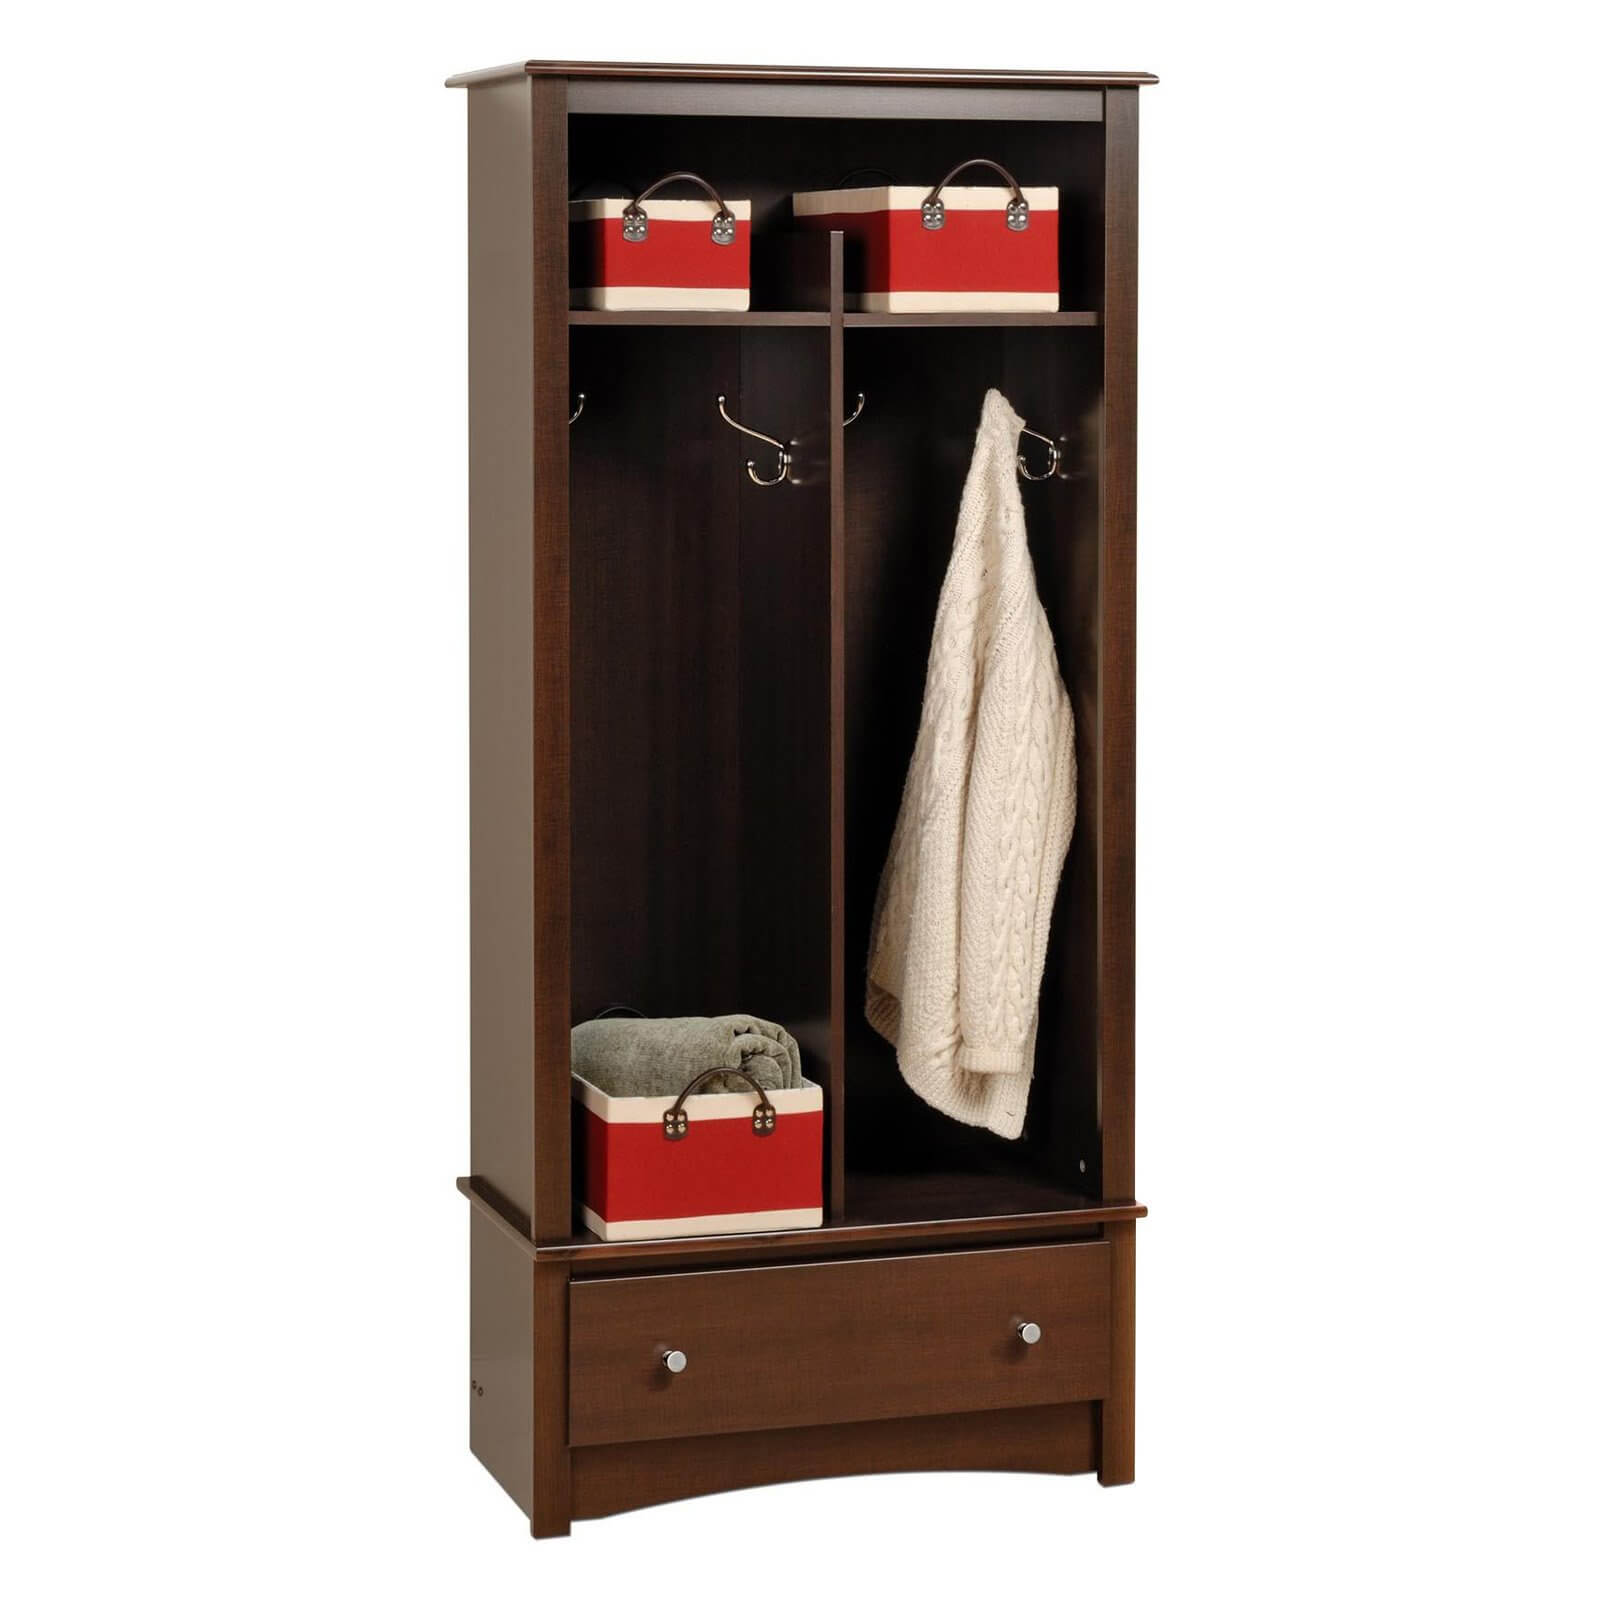 Here's a decorative mudroom locker that could easily work well in a more formal foyer. It's 2 sections includes decorative hooks. The bottom drawer offers additional concealed storage. It measures 32 inches wide, 16 inches deep and 69 inches in height.